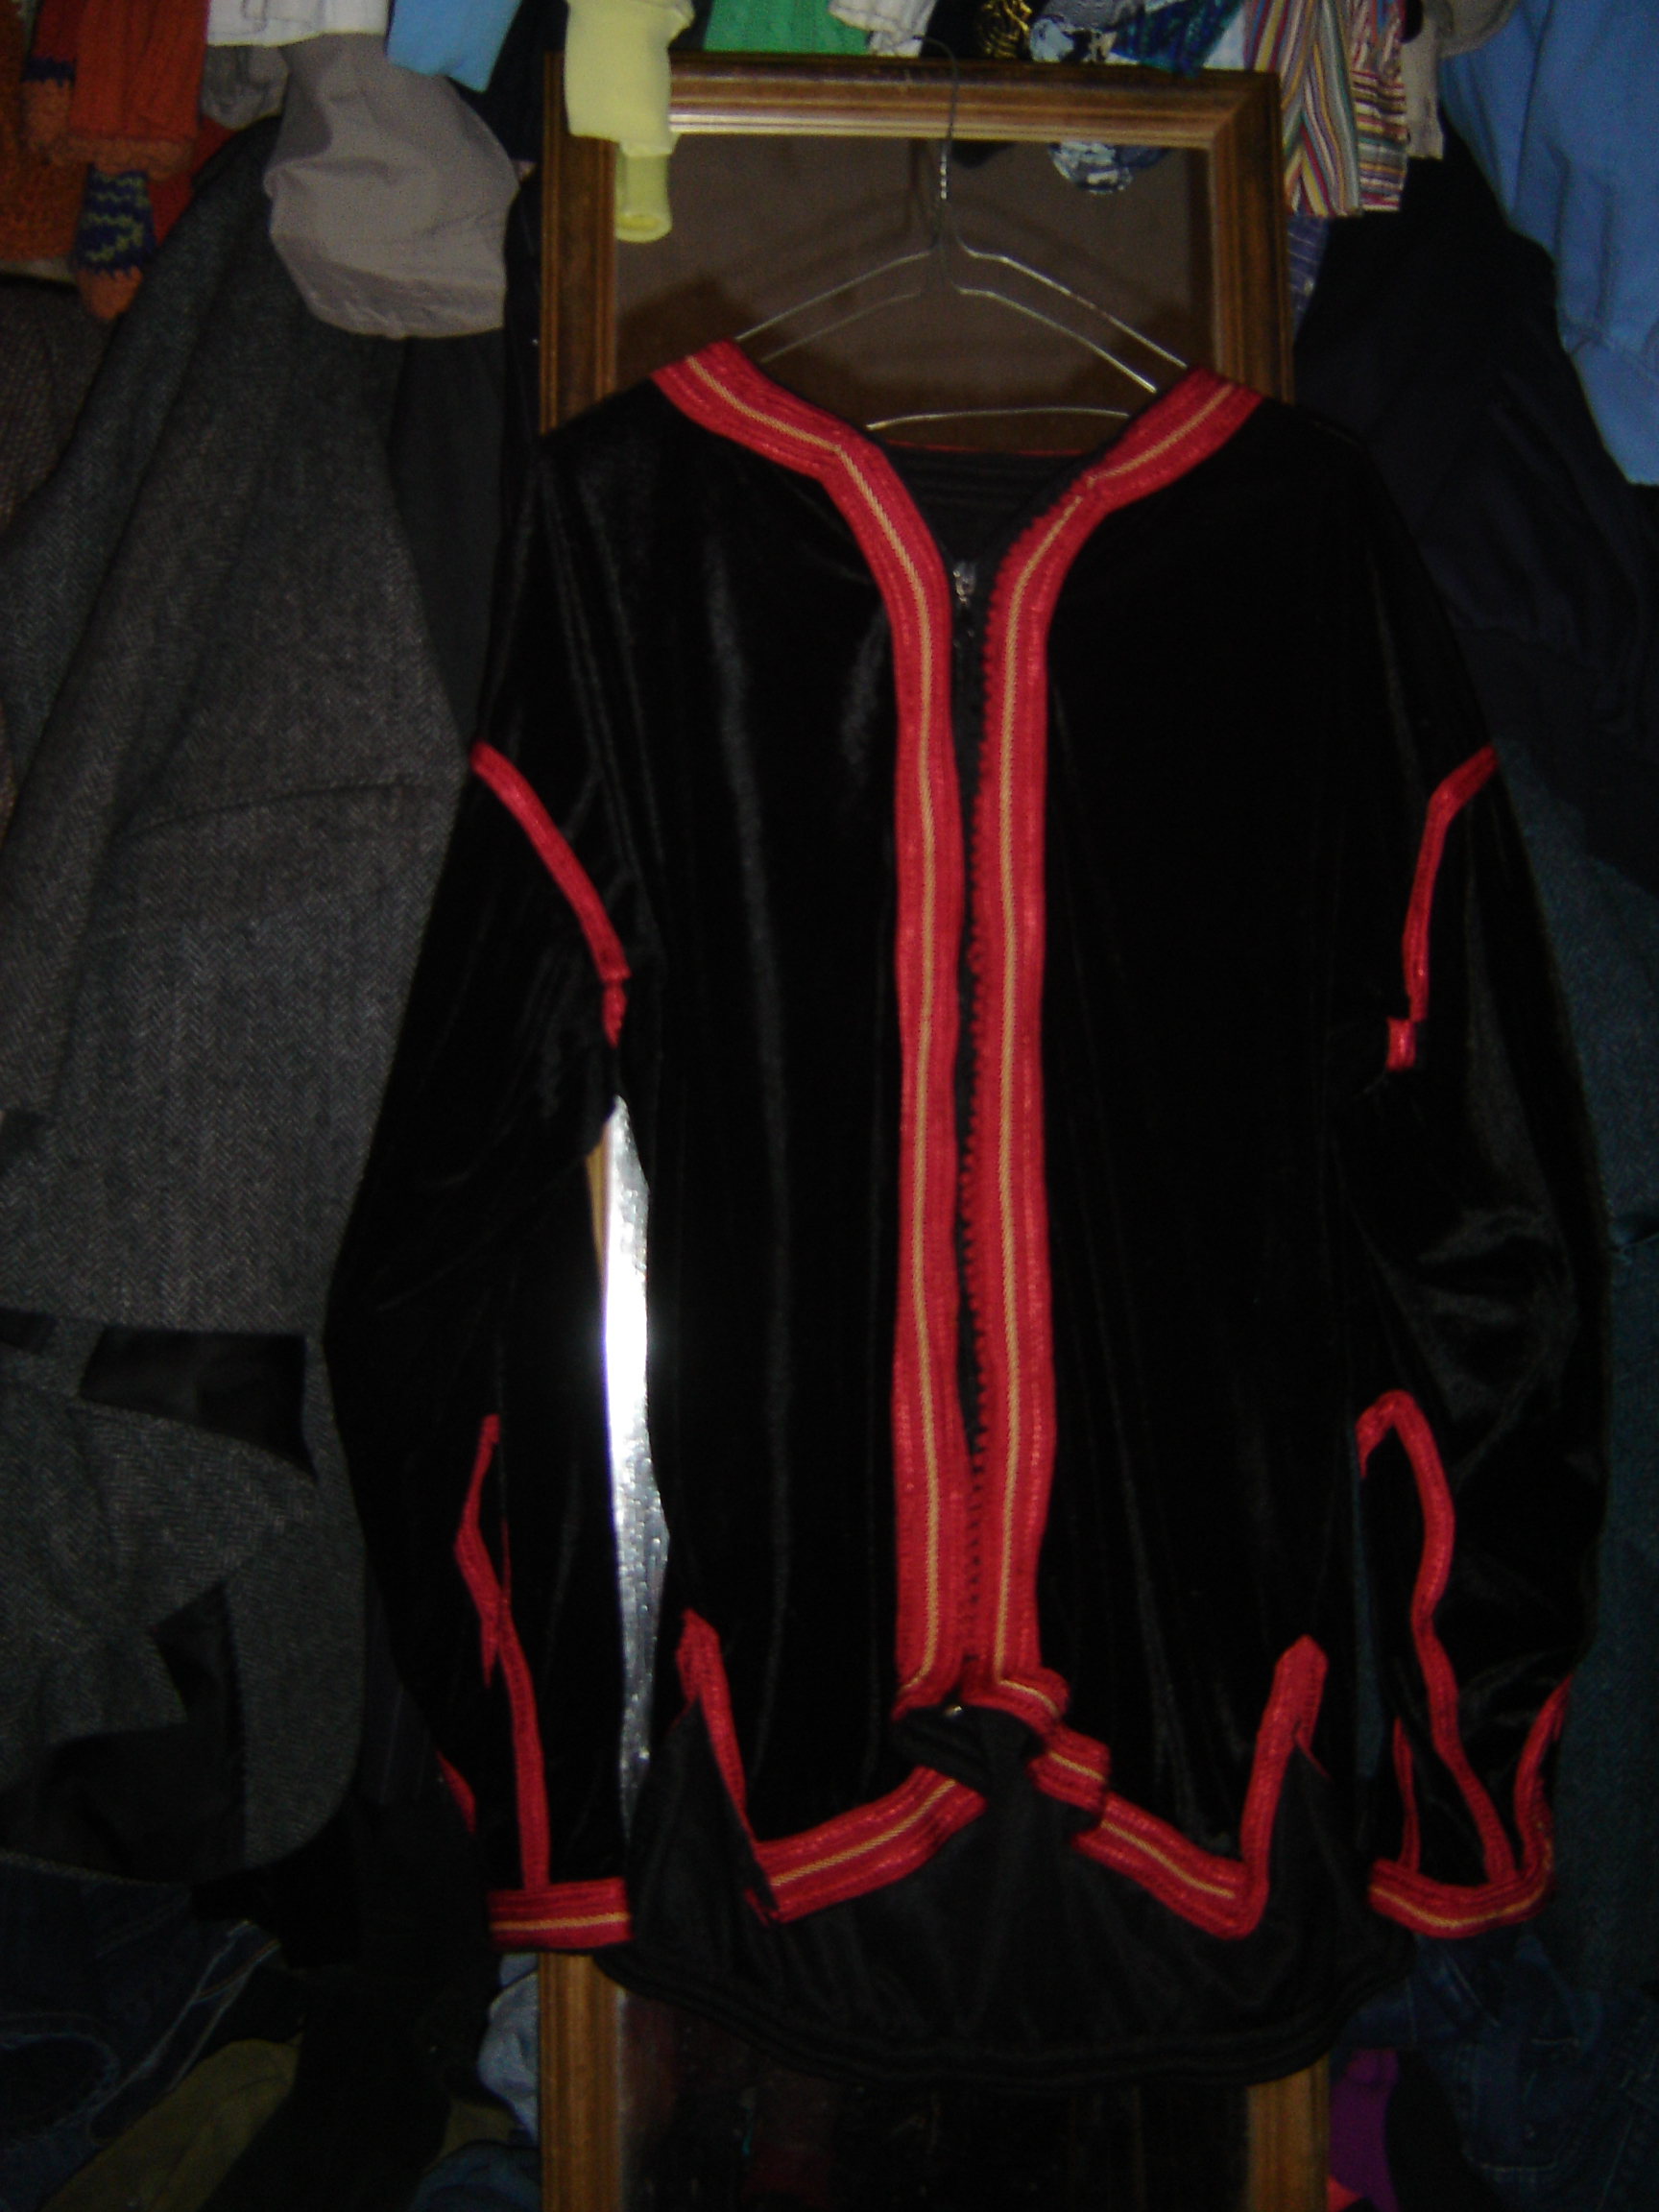 Black velvet Moroccan shirt with scarlet edging